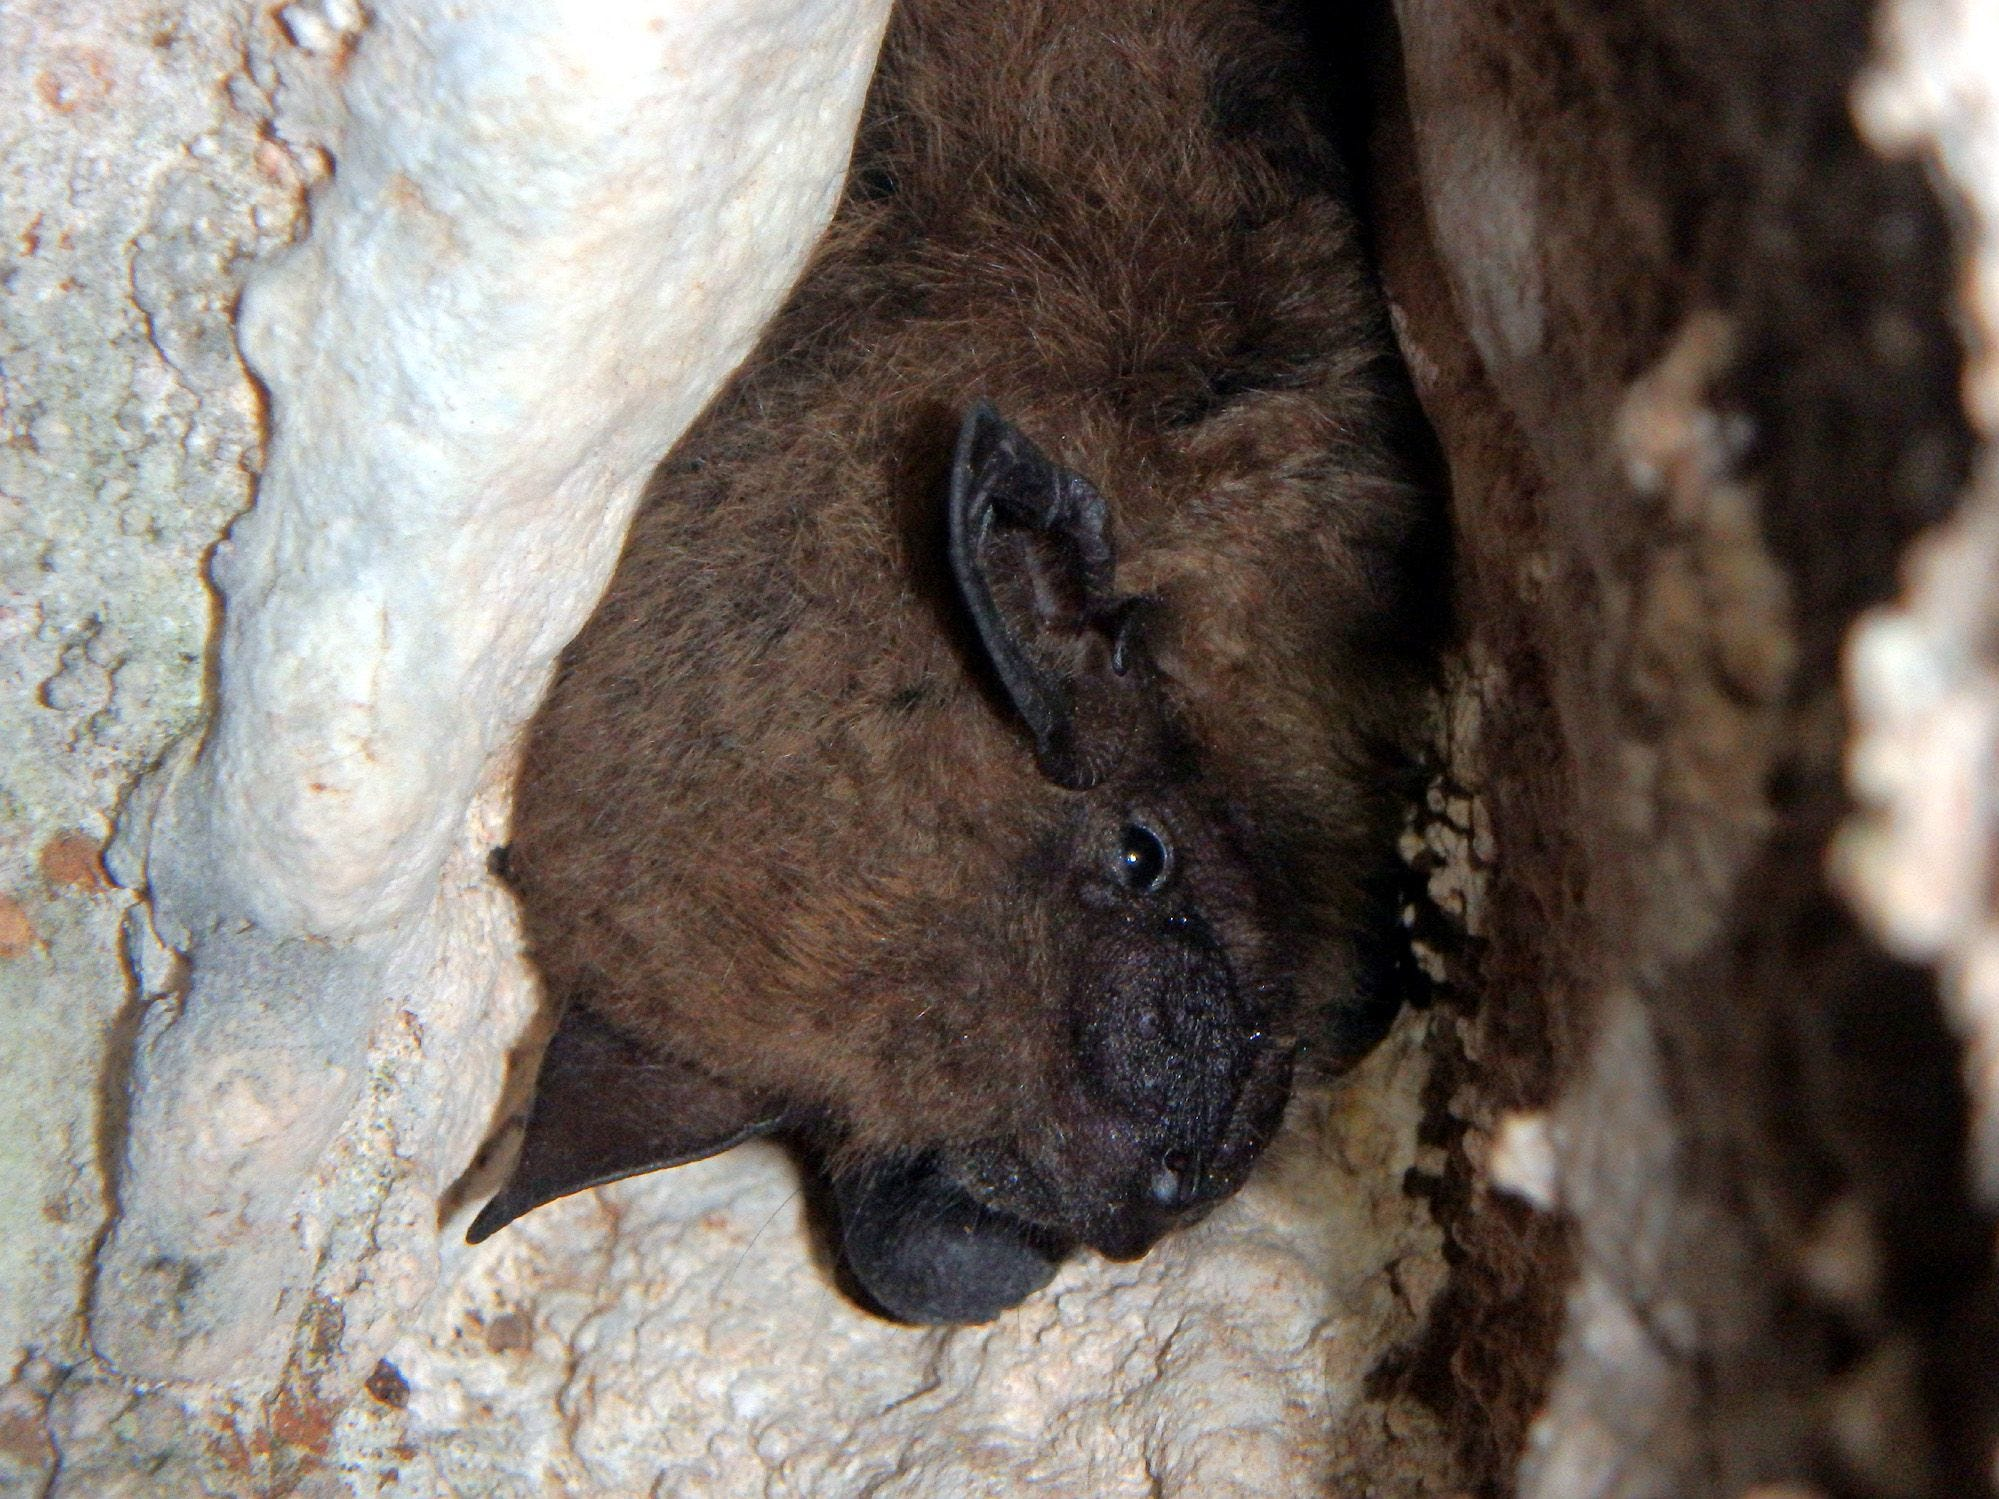 Surveyors found a big brown bat hibernating in Sequiota Cave, along with 112 tri-colored bats.